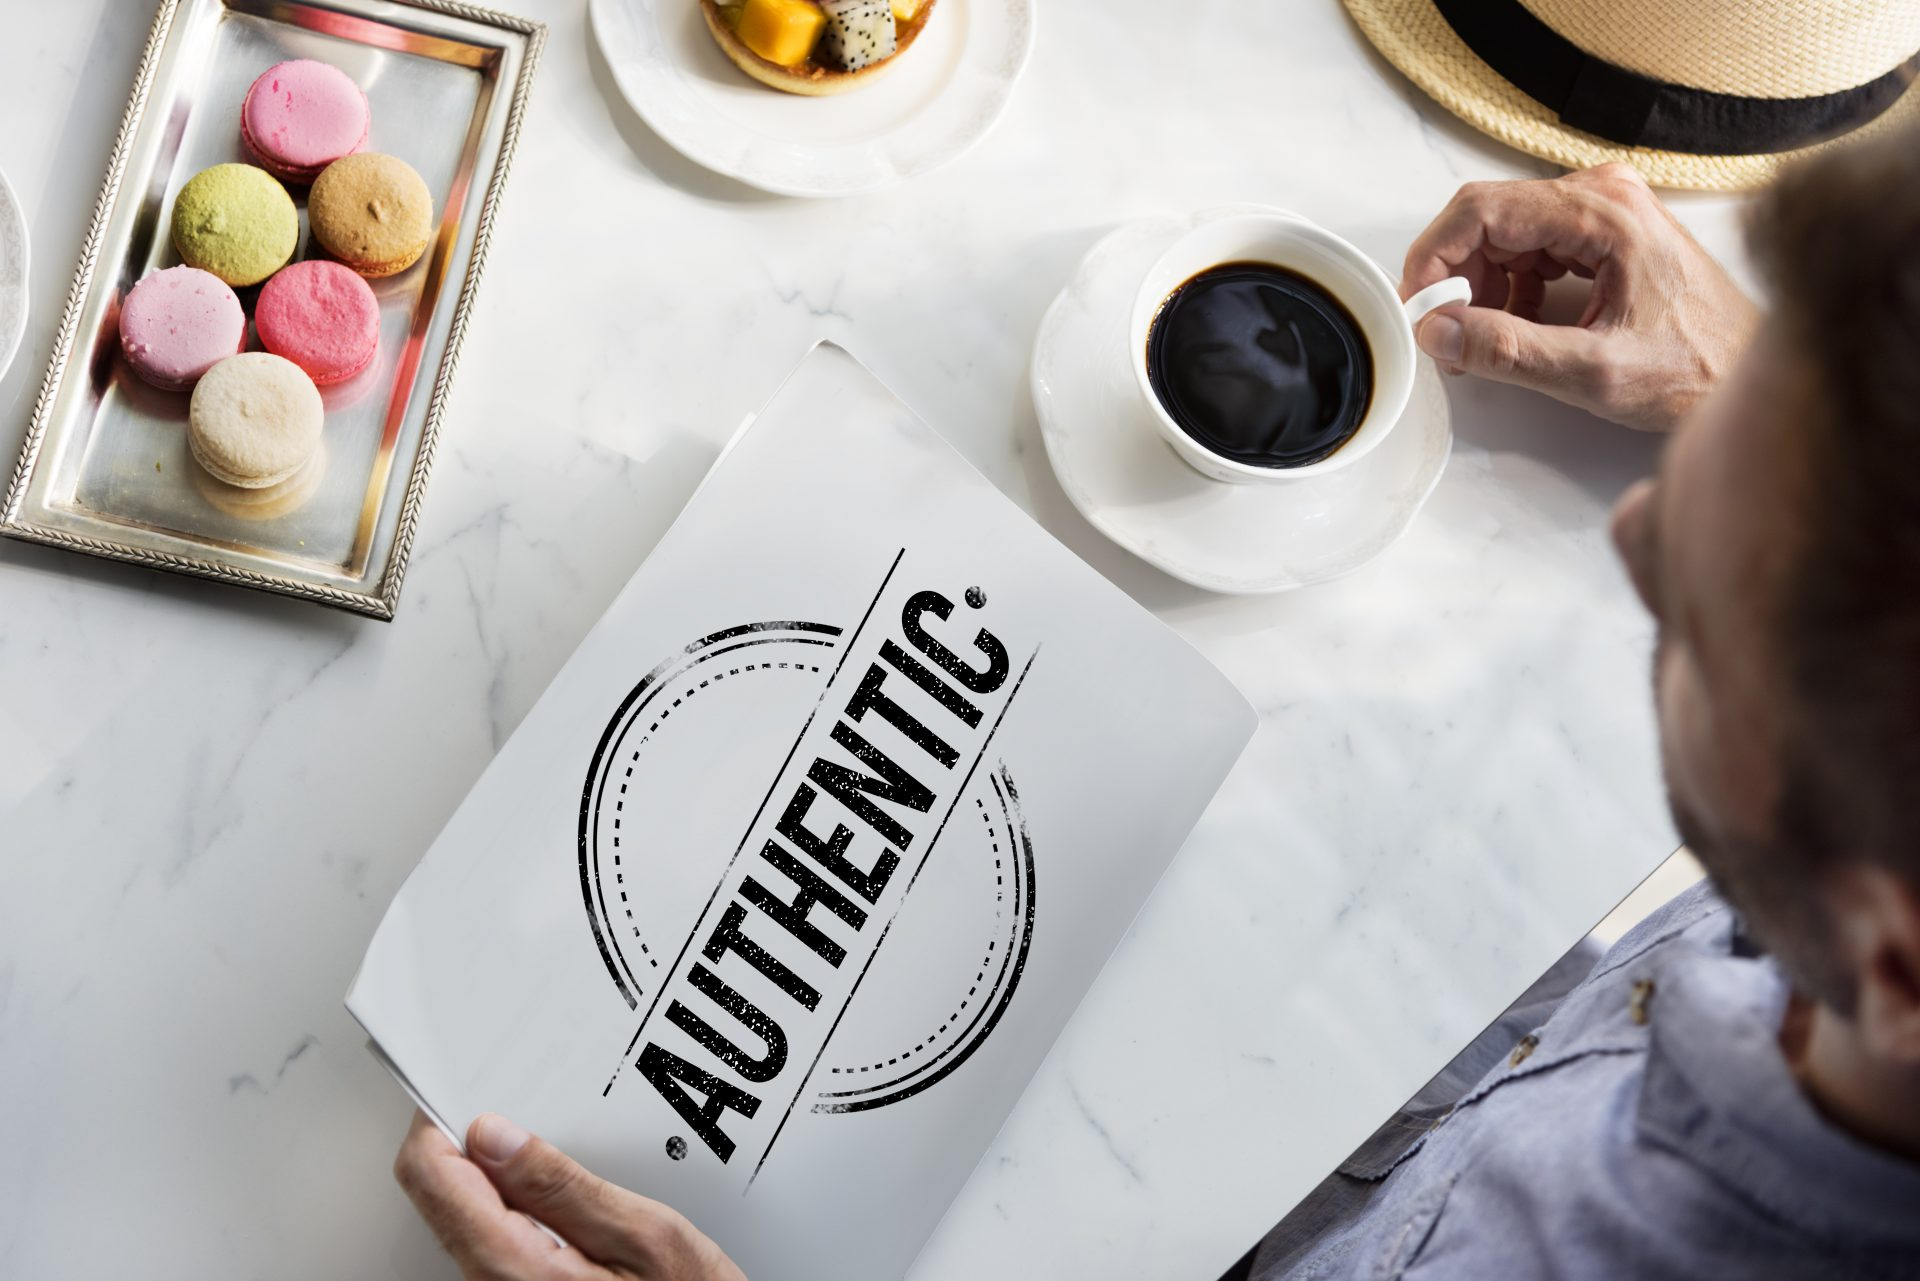 Being Authentic: Buzzword or Accurate Advice?